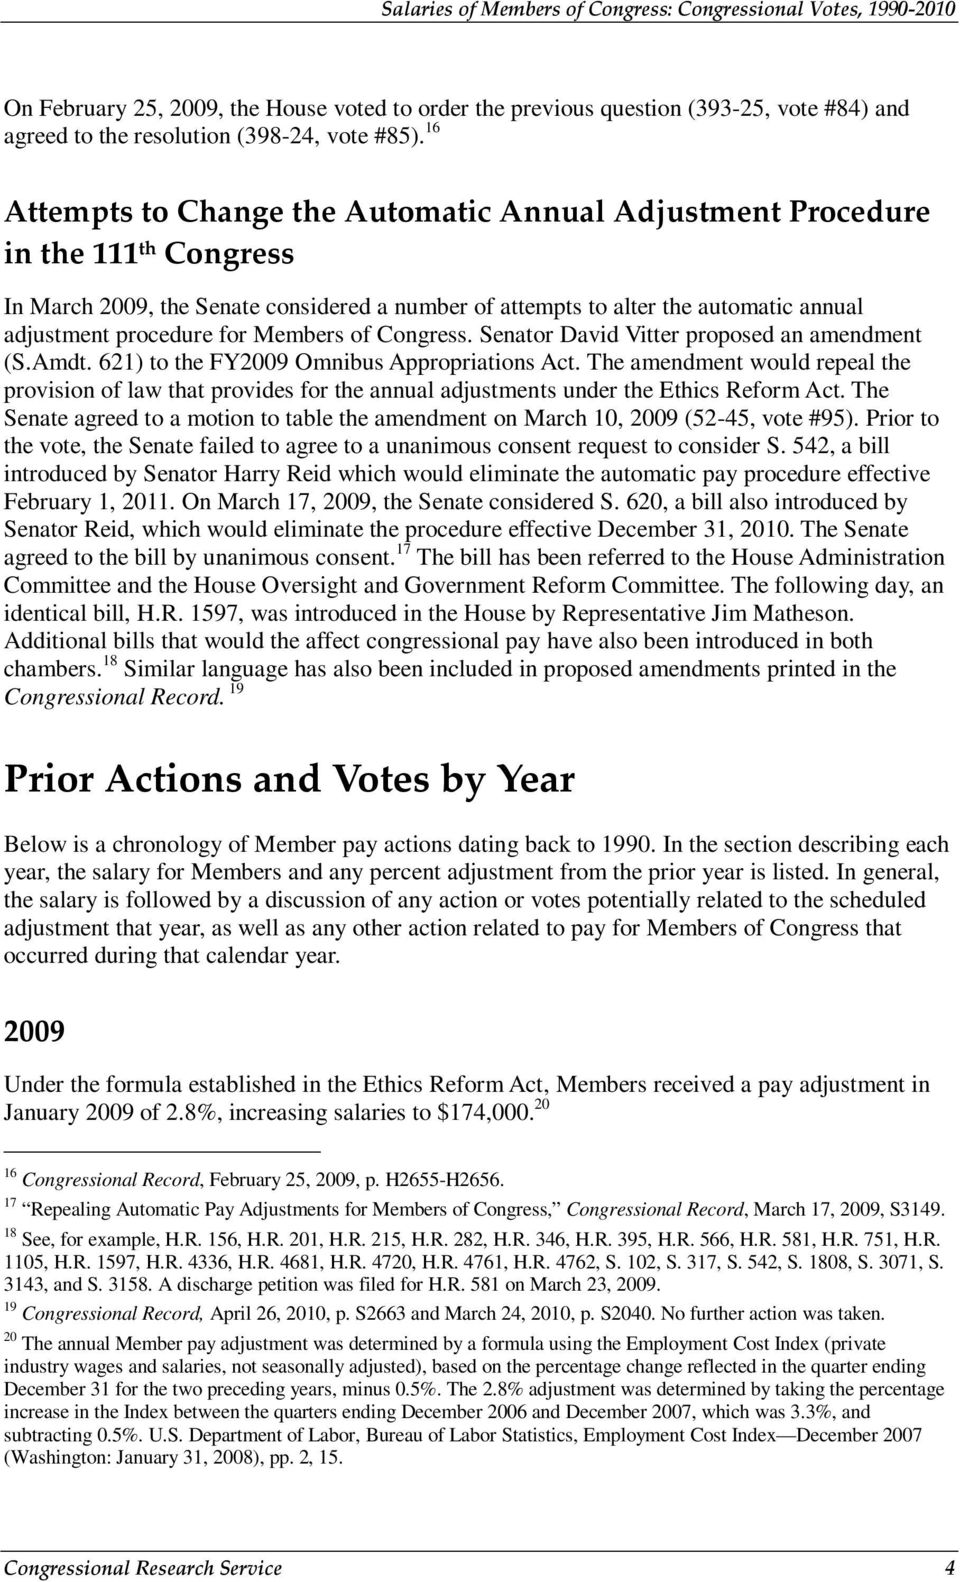 Members of Congress. Senator David Vitter proposed an amendment (S.Amdt. 621) to the FY2009 Omnibus Appropriations Act.